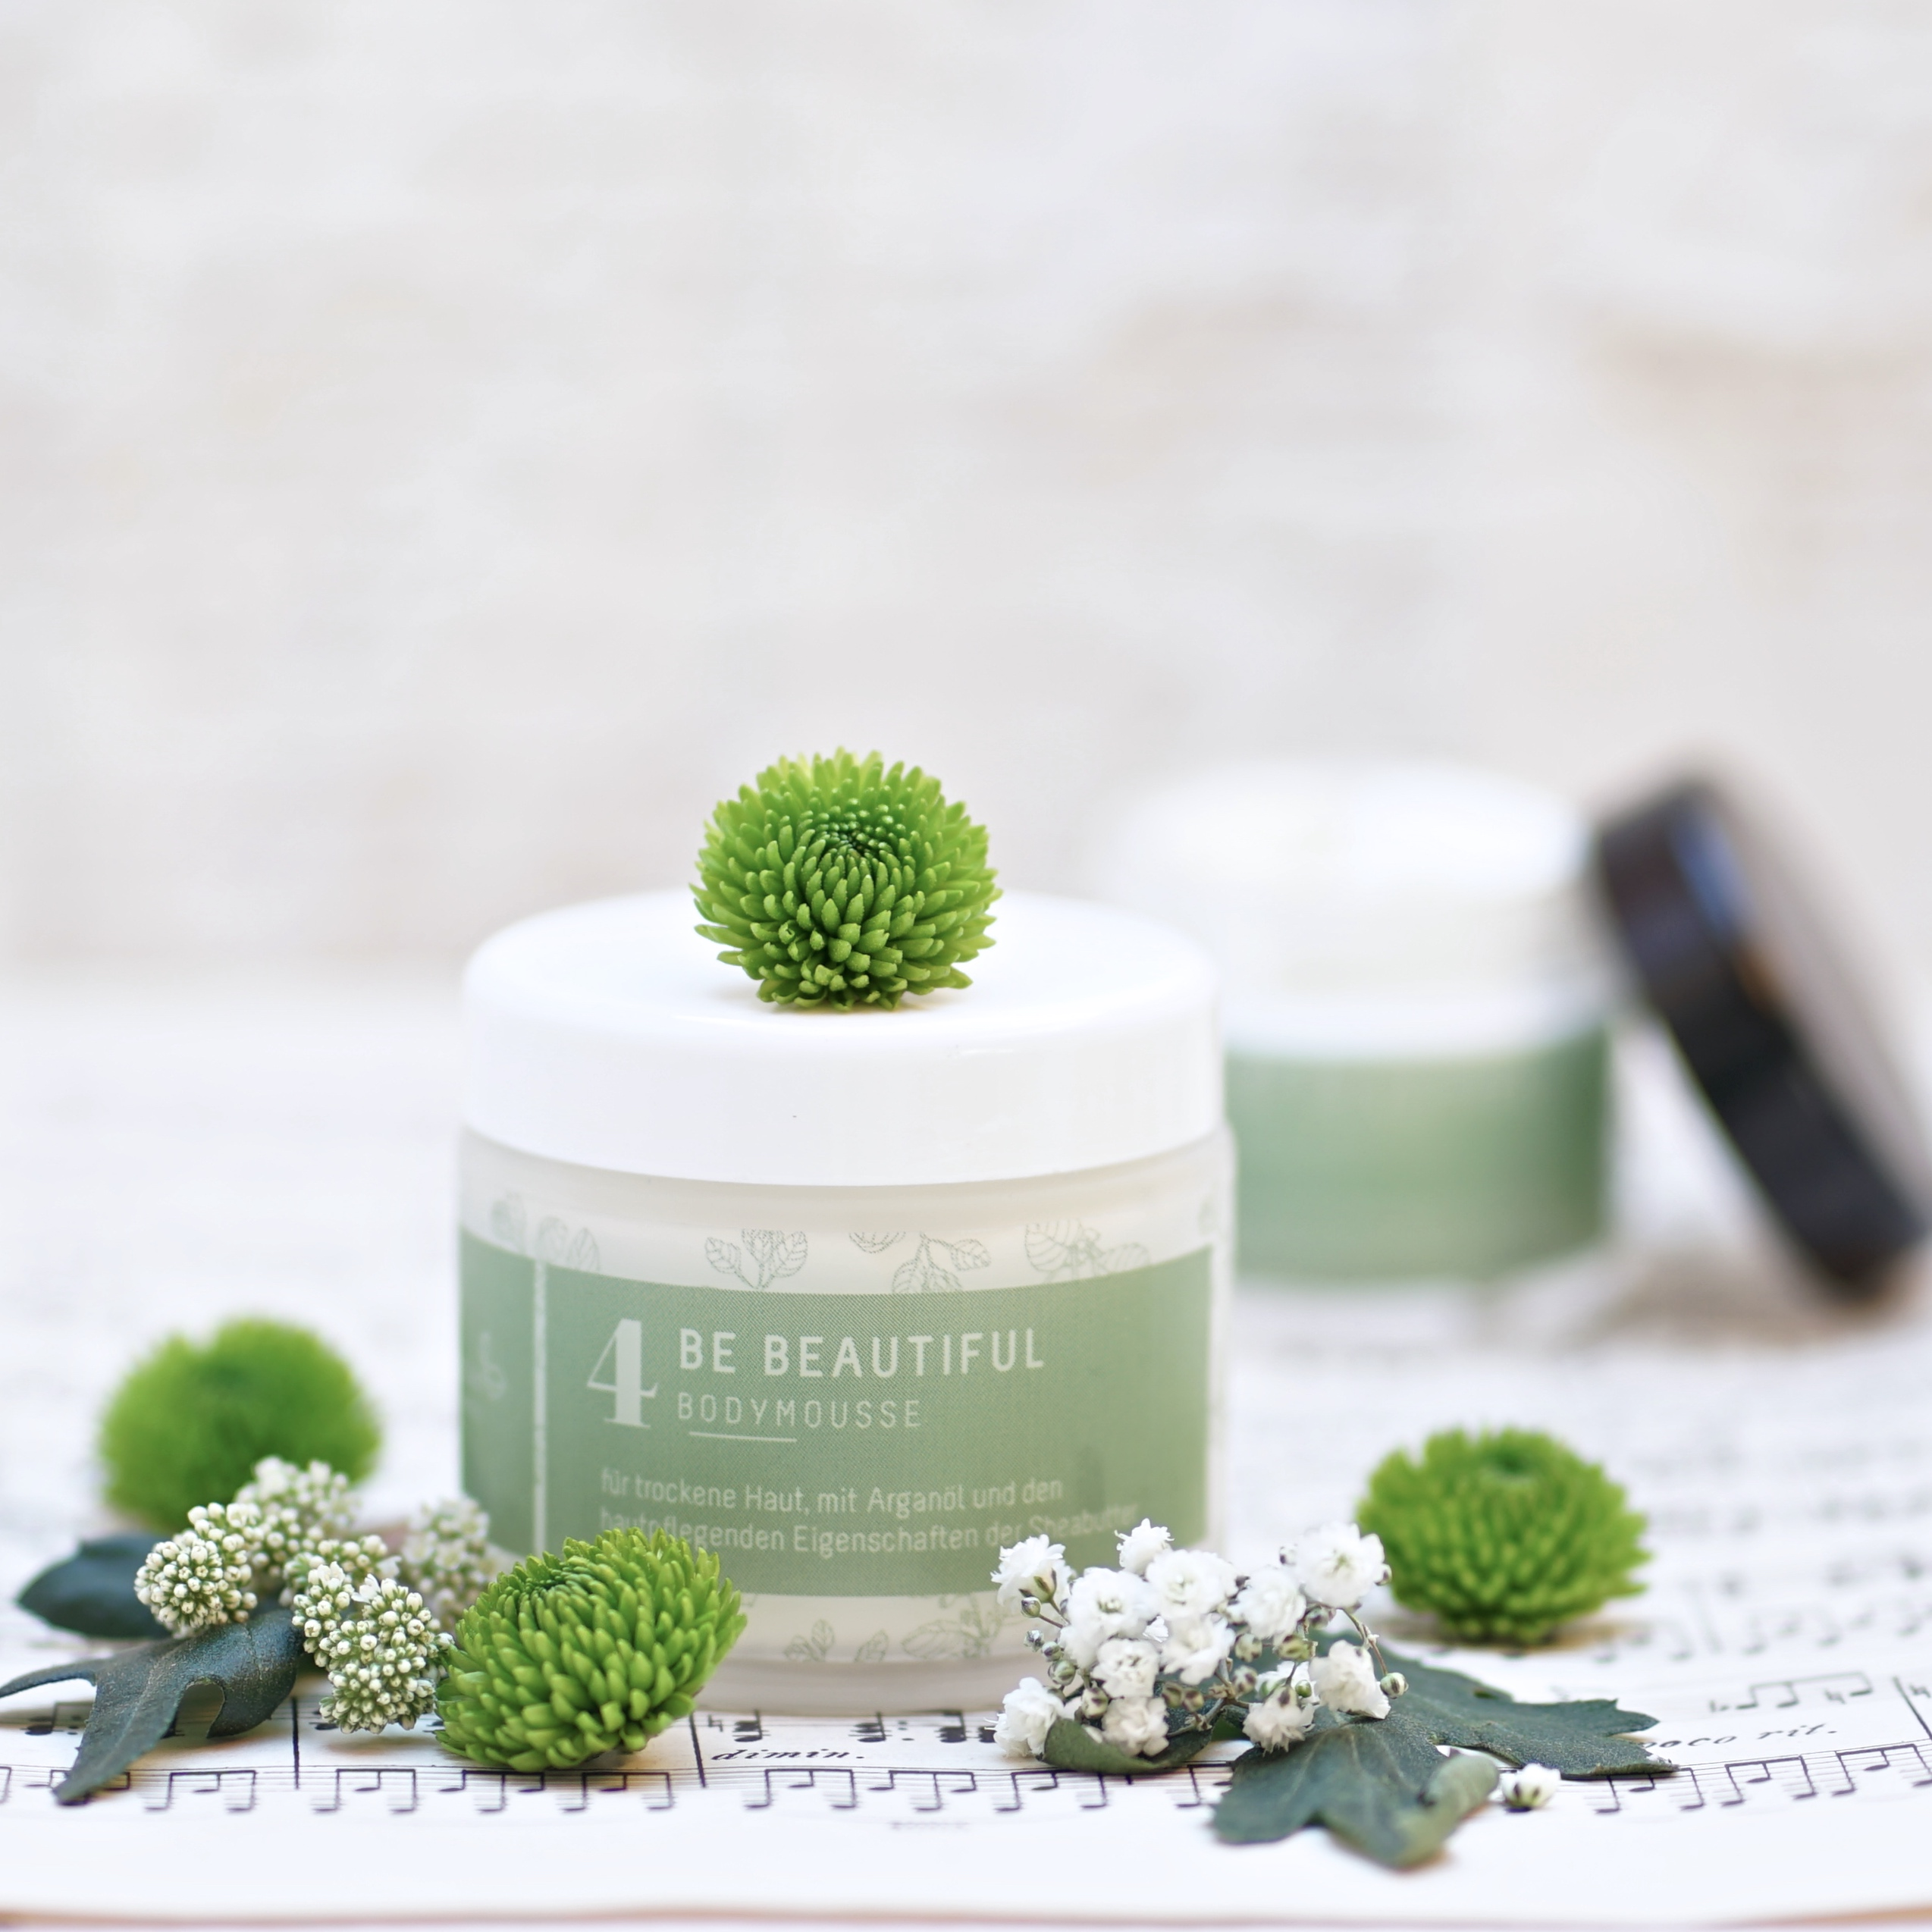 Be Beautiful (Bodymousse): Neu im Sortiment